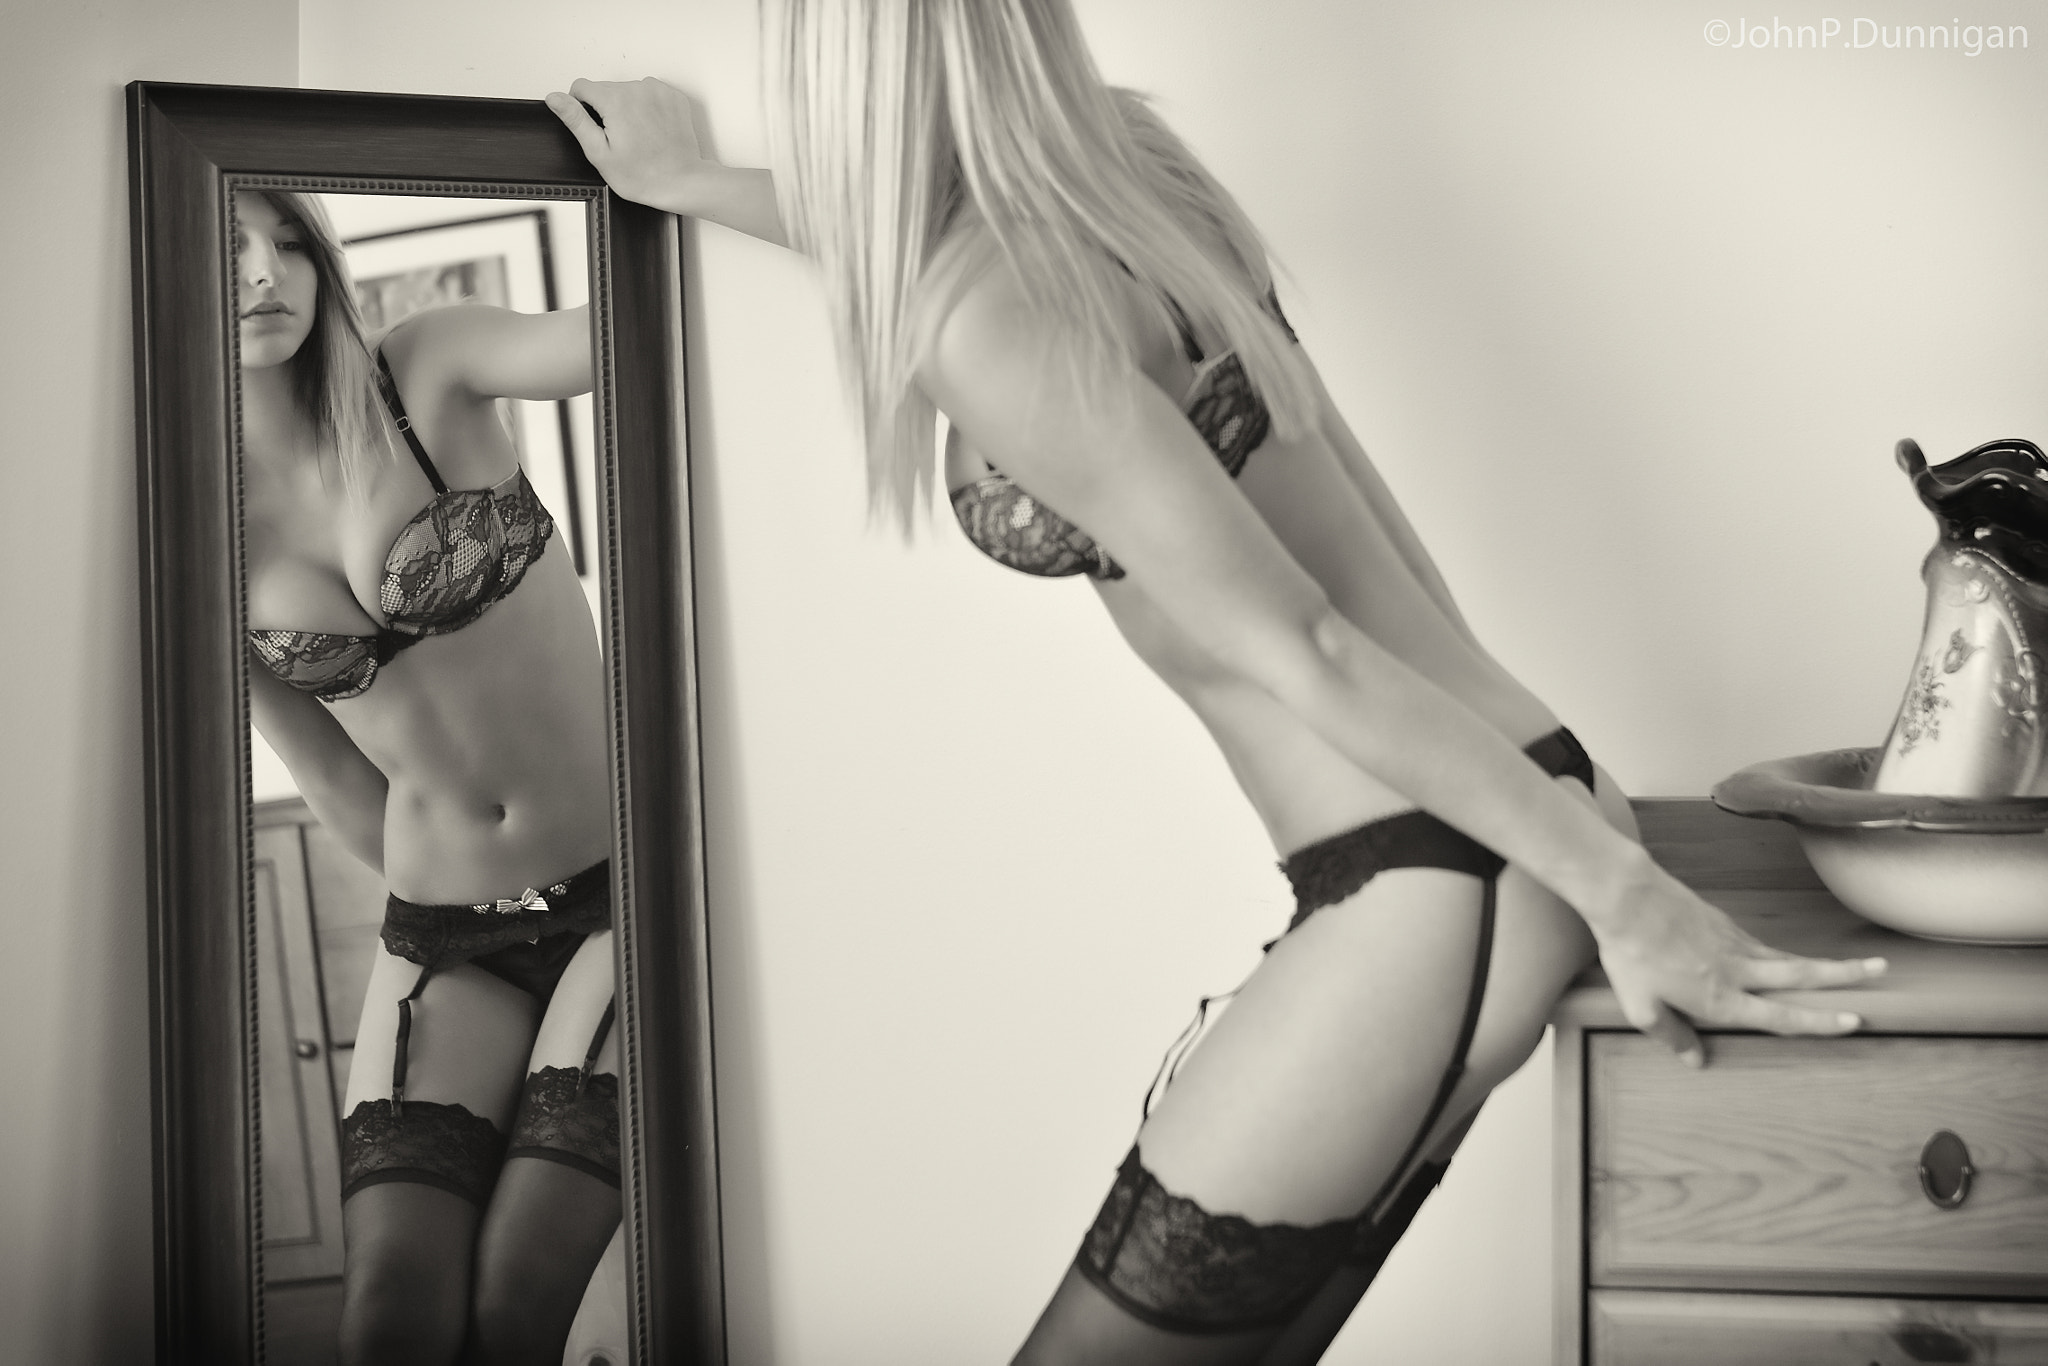 Photograph d ... mirror by John Dunnigan on 500px